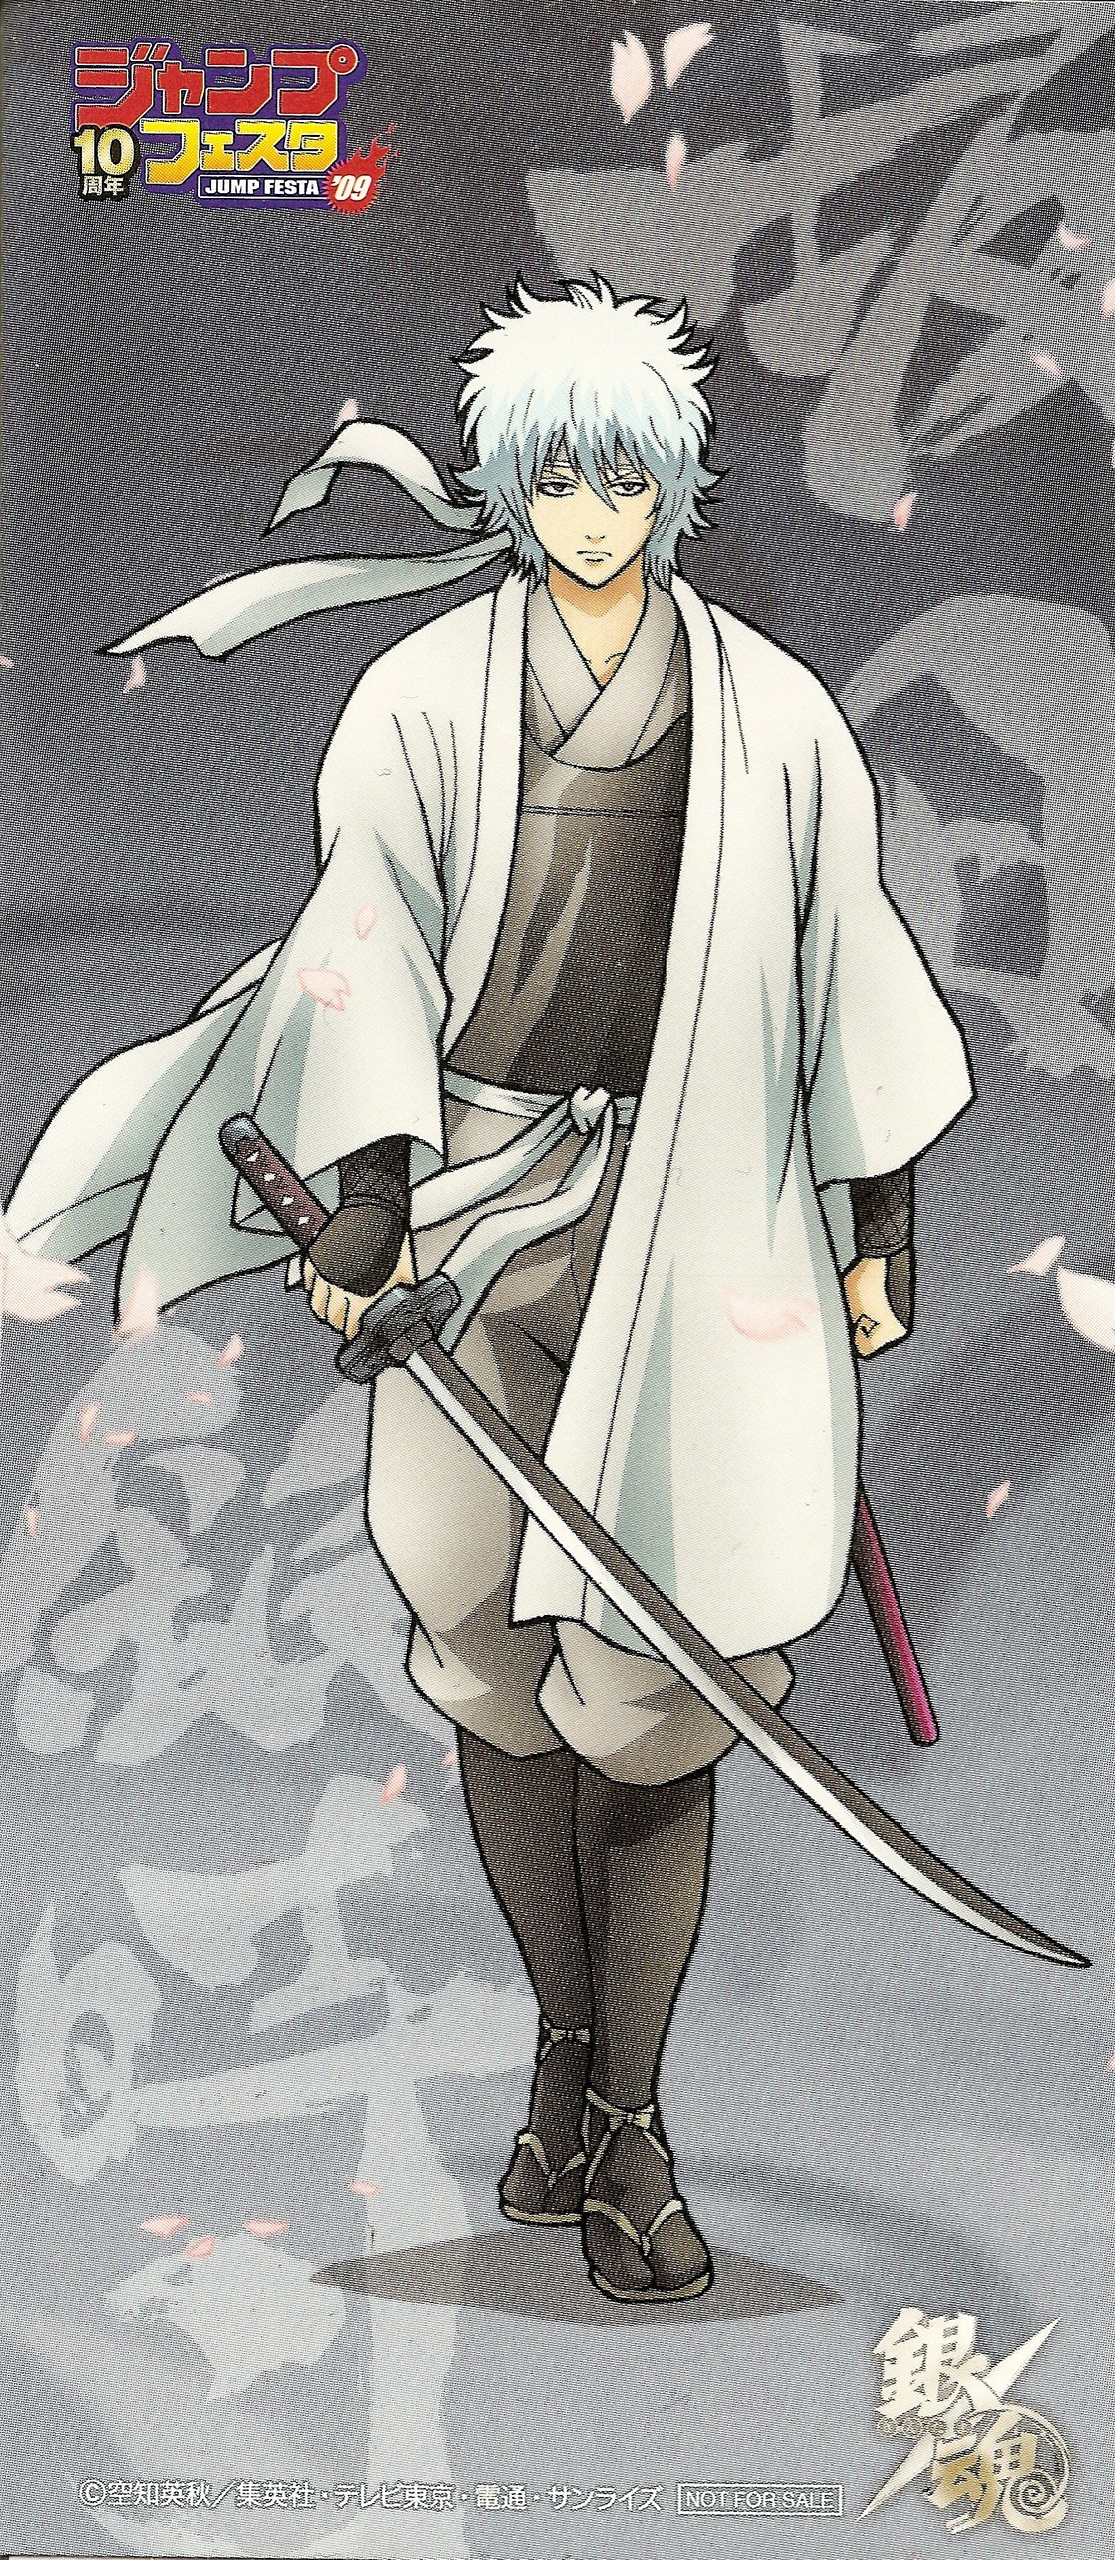 Attack on Titan Custom Skins View topic - COMPLETETED ...Gintama Gintoki Past Wallpaper